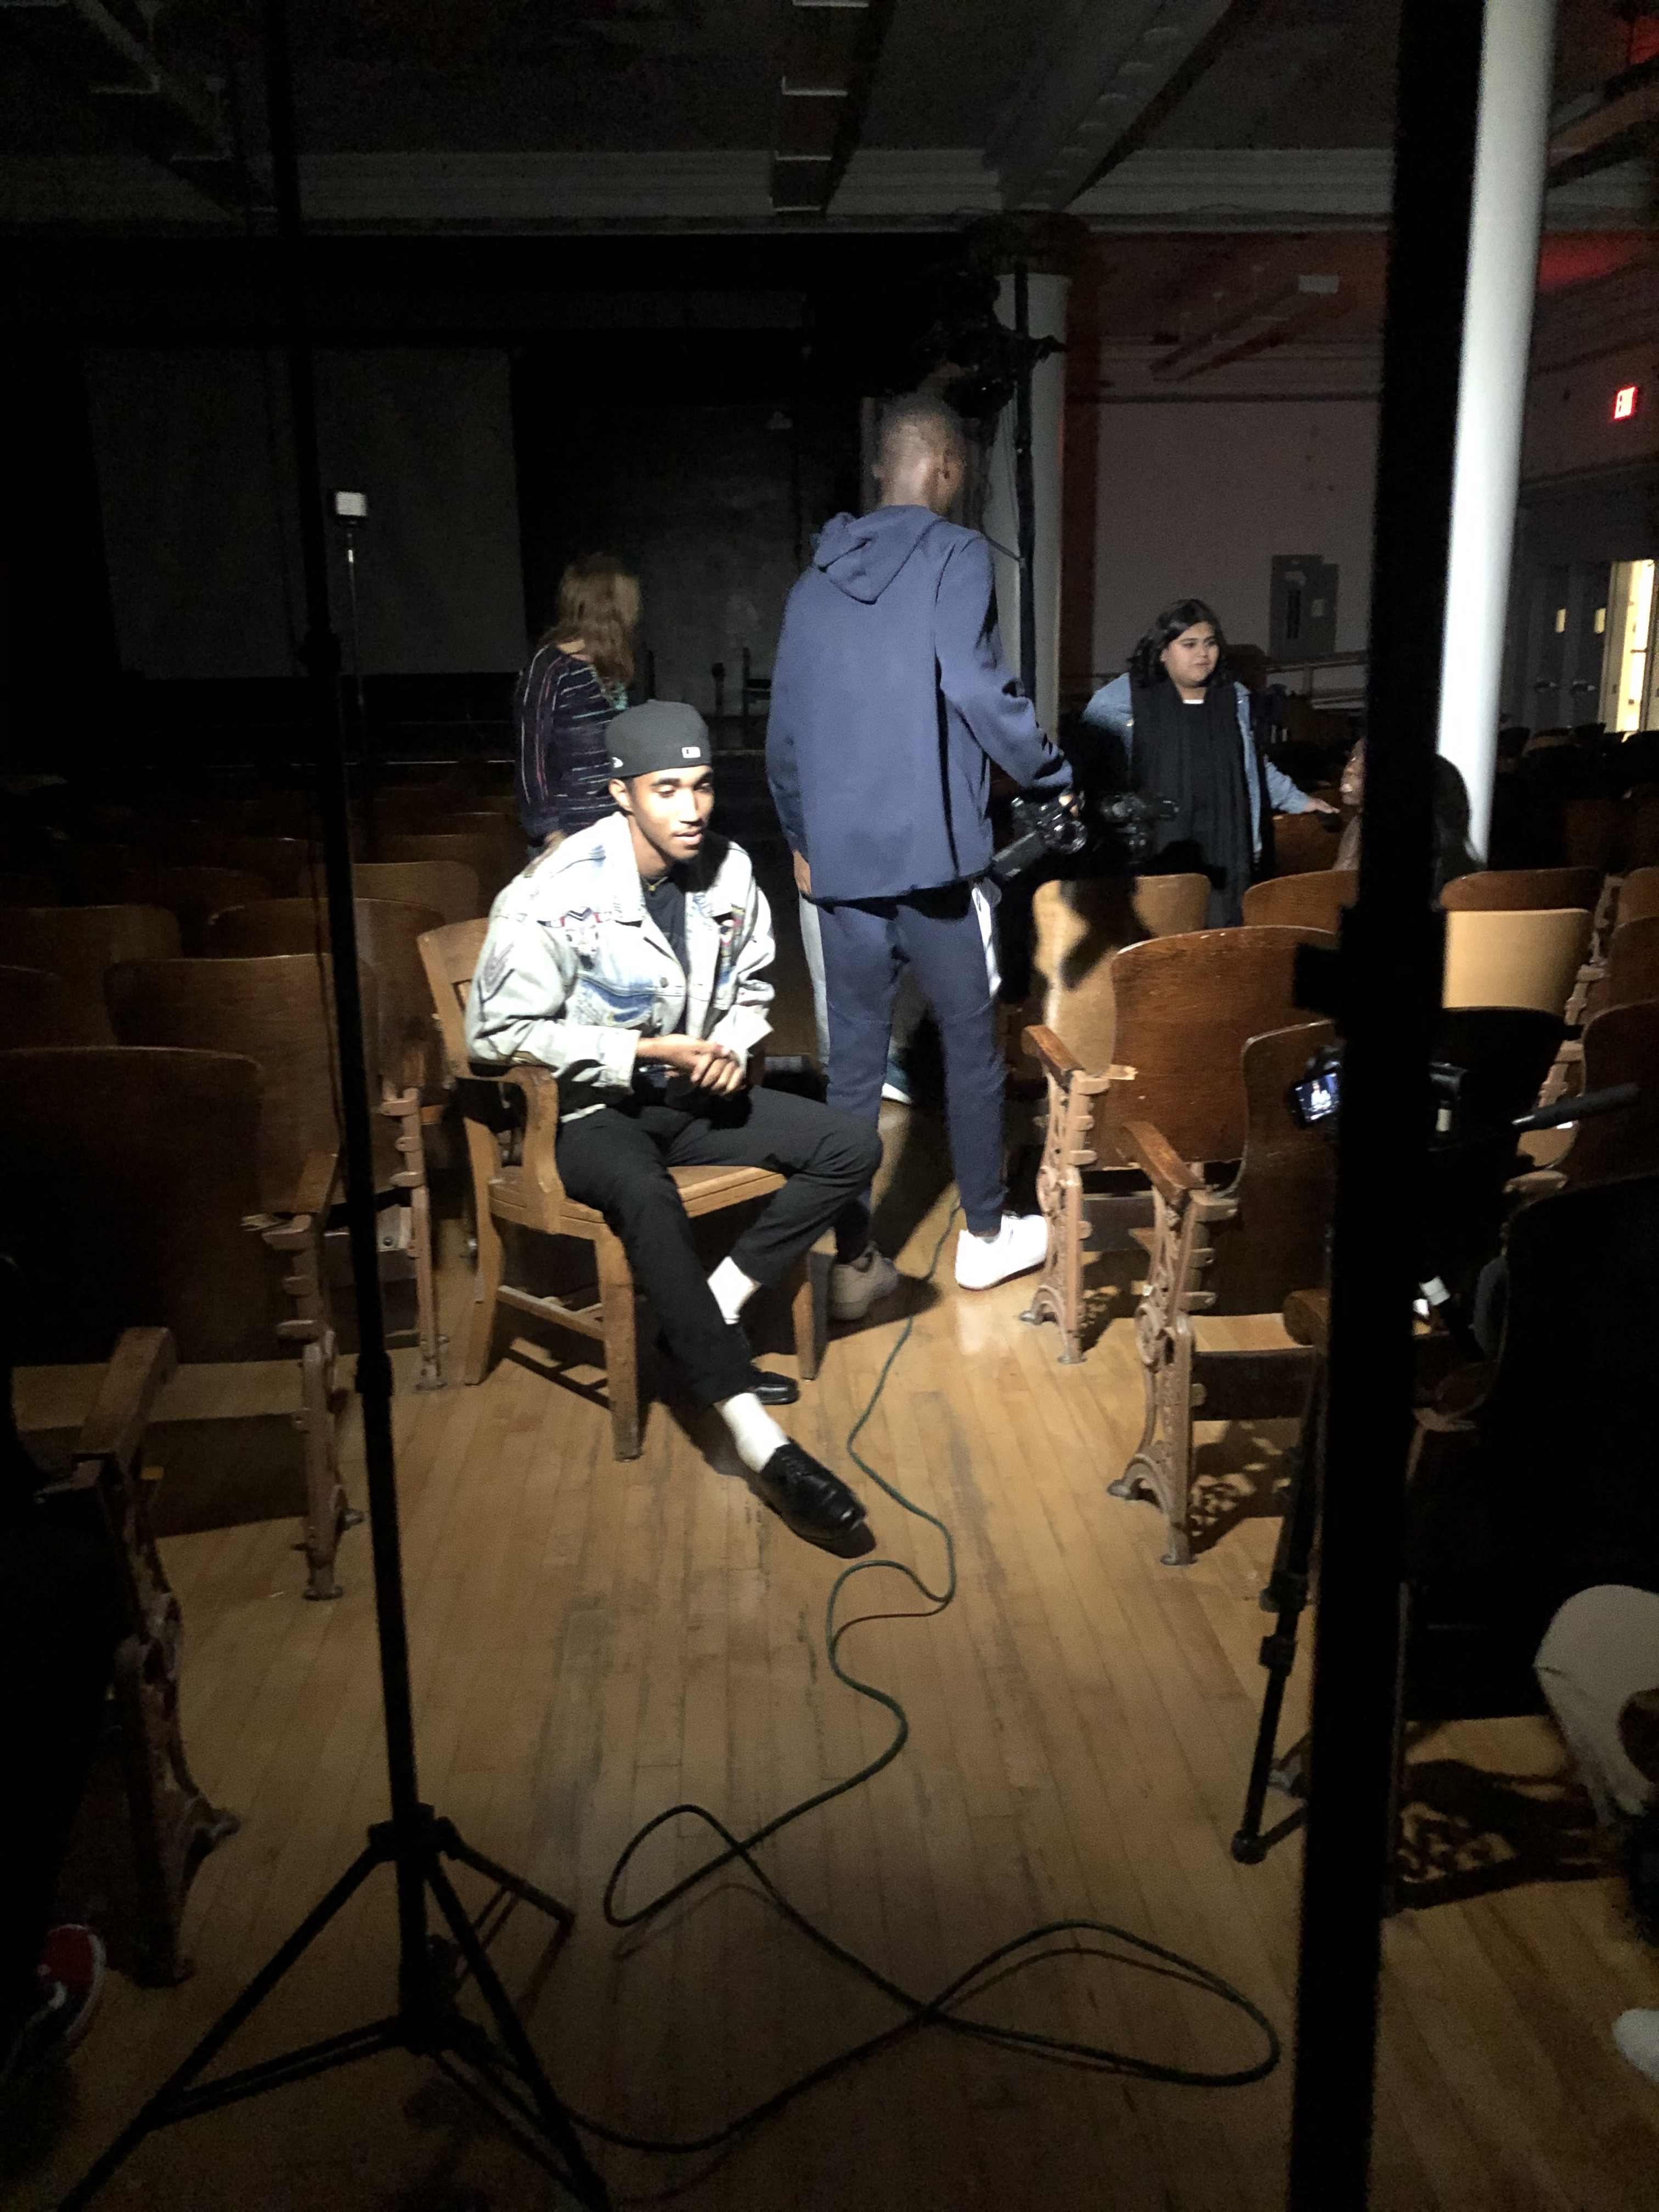 image of youth setting up to record video in a darkened room. One youth is seated towards middle of photo illuminated by a spot light. The other young people are standing towards back of photo with their backs to the camera.